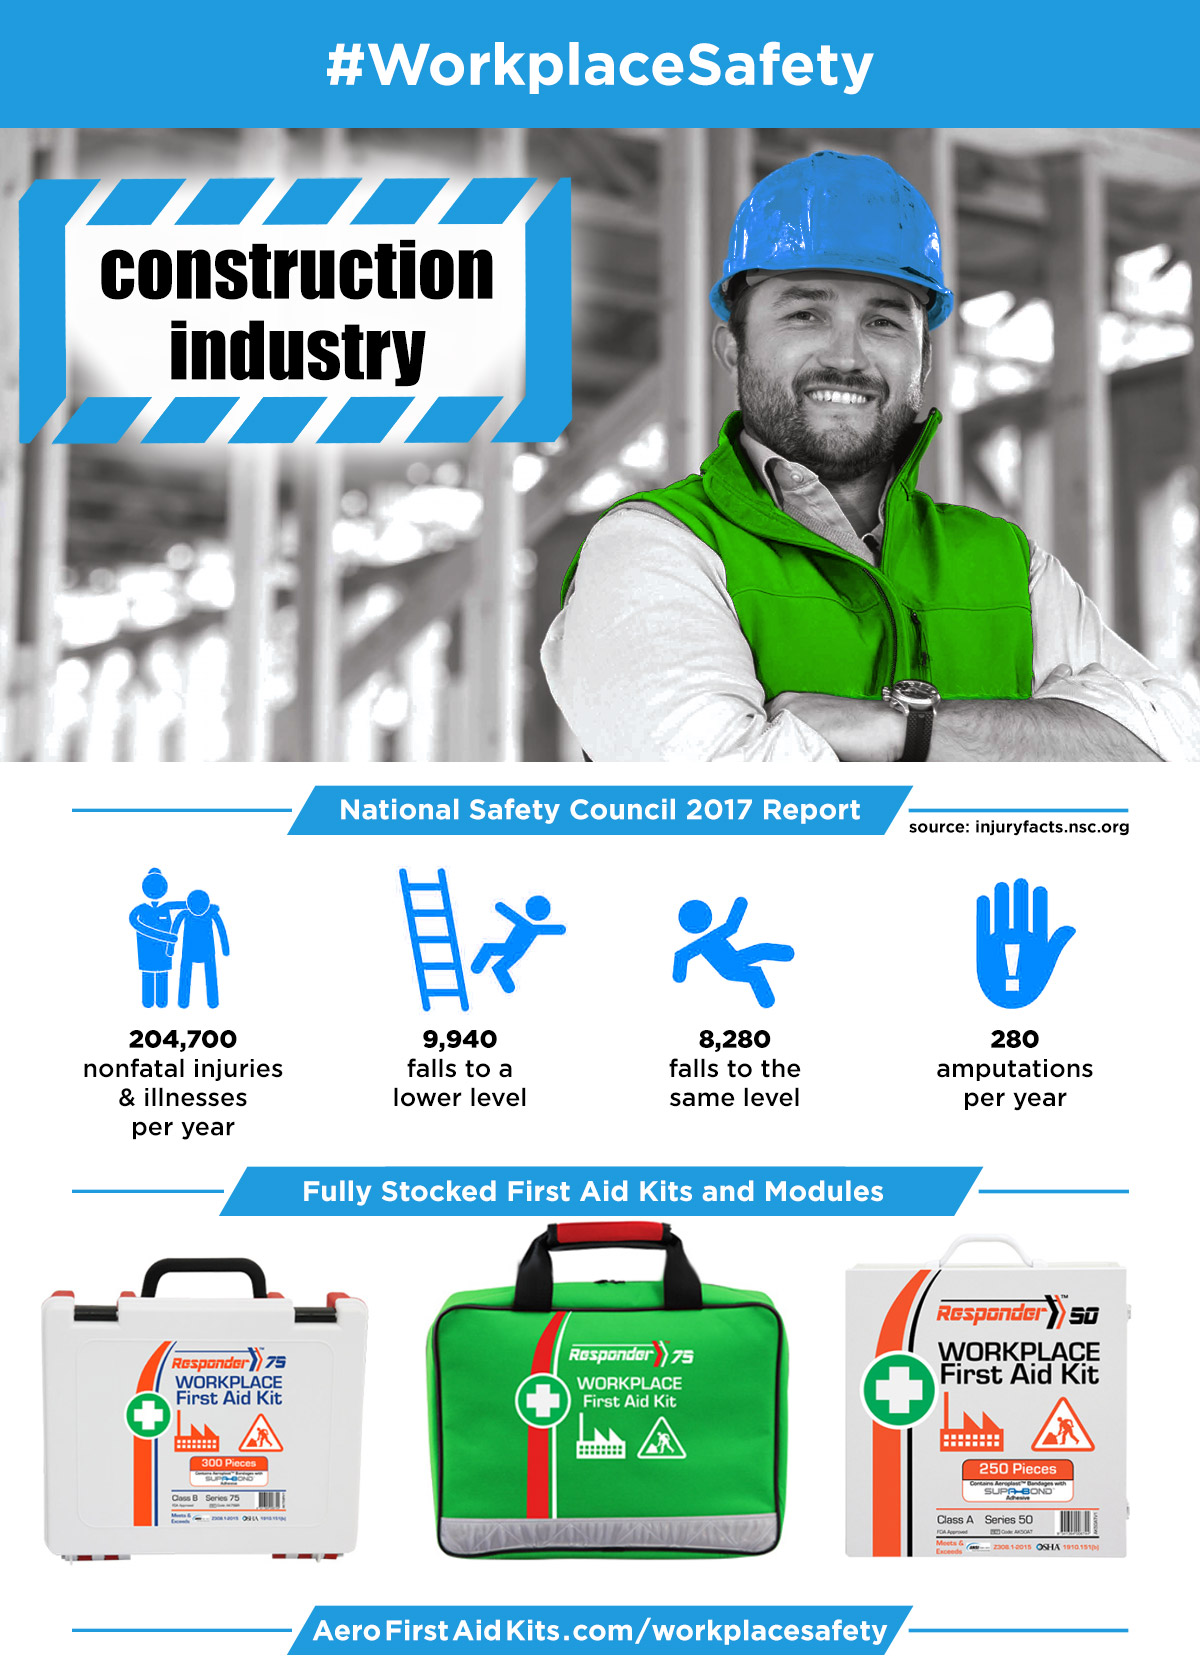 Workplace Safety - Construction Industry